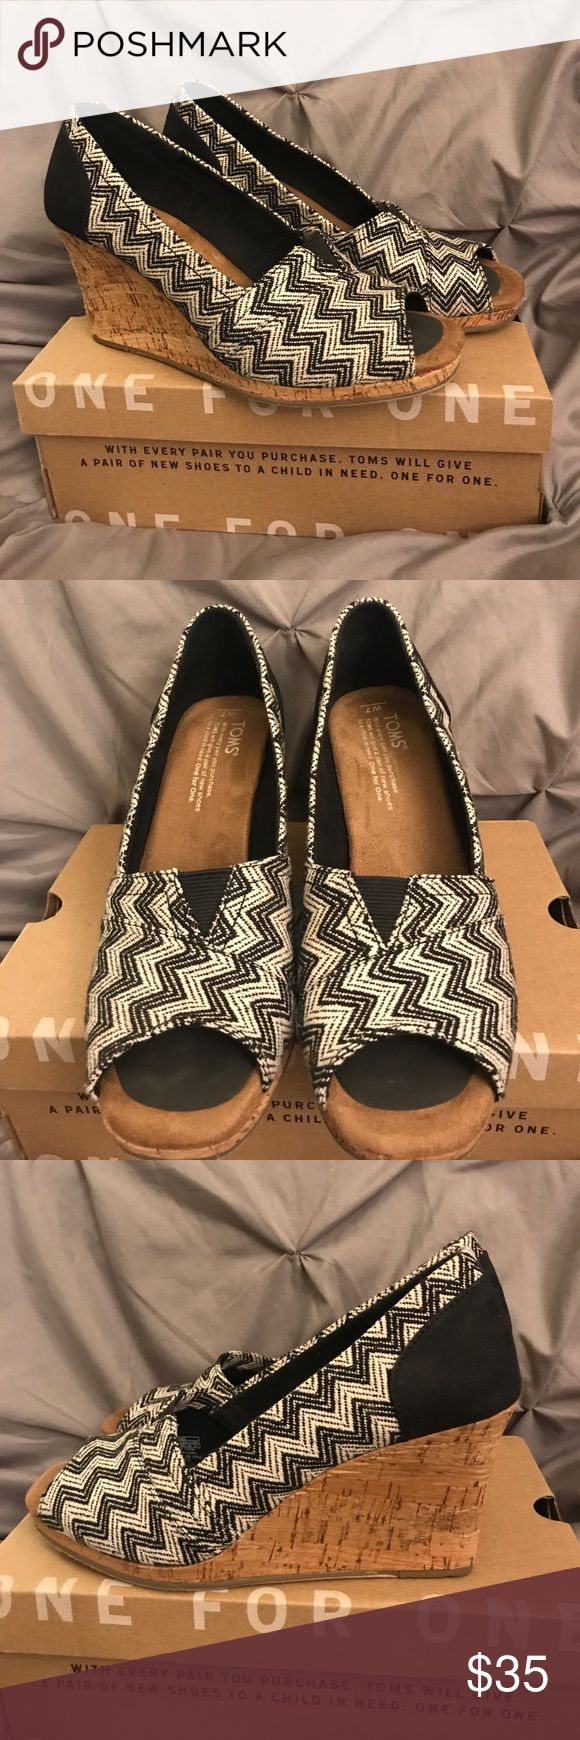 TOMS Chevron Woven Cork Wedges Black & white (although looks off white to me) chevron woven wedges.  Wore one time and decided they weren't for me.  Small front adhesive foot pads inserted as pictured. Toms Shoes Wedges